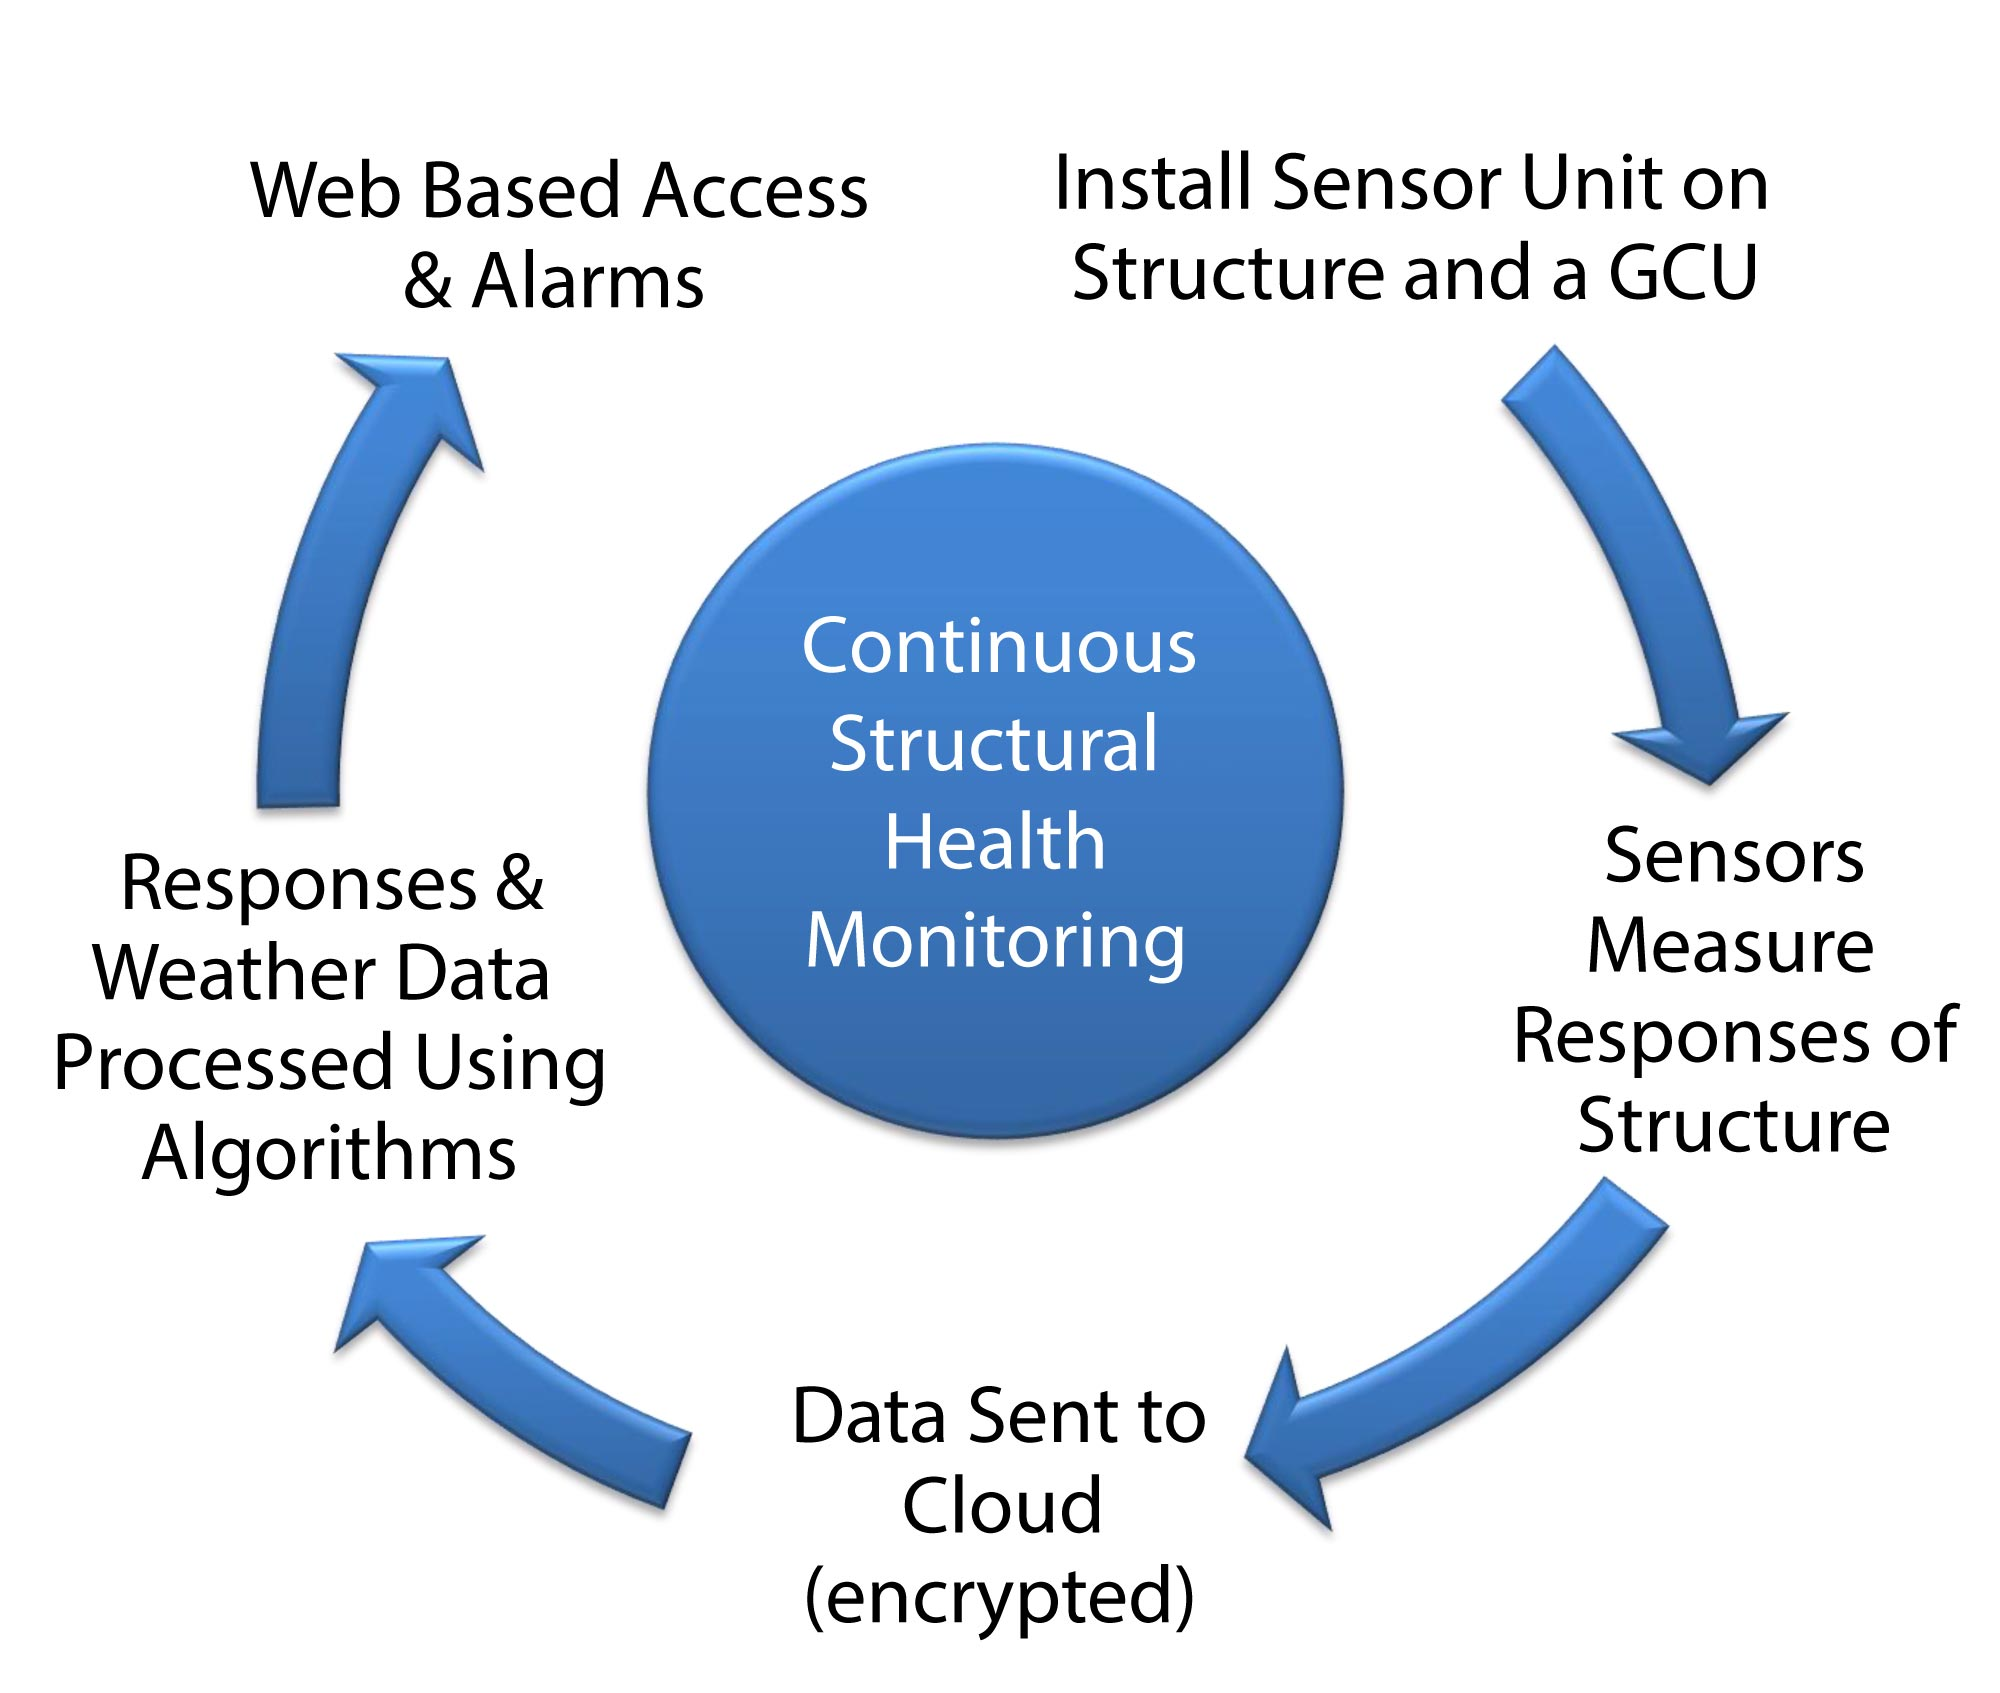 Install sensor unit on structure and ground control unit (GCU) > Sensors measure response of structure > Data encrypted & sent to cloud > Responses & weather data processed using algorithms > Disturbances trigger alarms to user cell phone > Data accessible via web-based interface